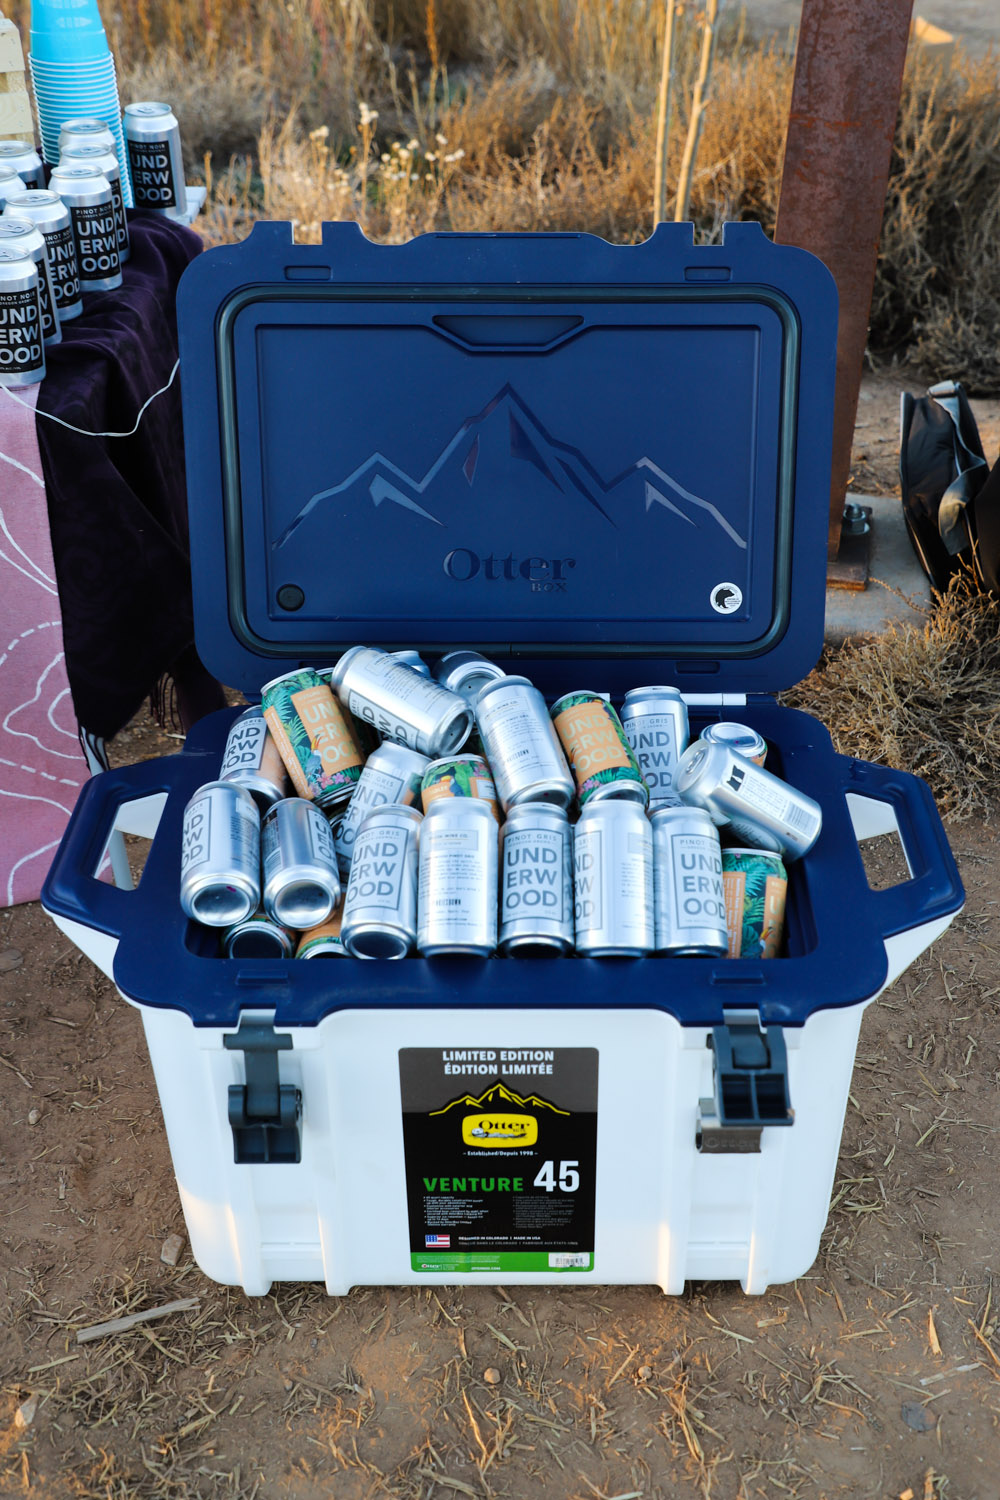 An Otterbox CVenture 45 cooler full of Union Wine's Underwood Pinot Gris and Riesling Radler — photo by Hailey Hirst